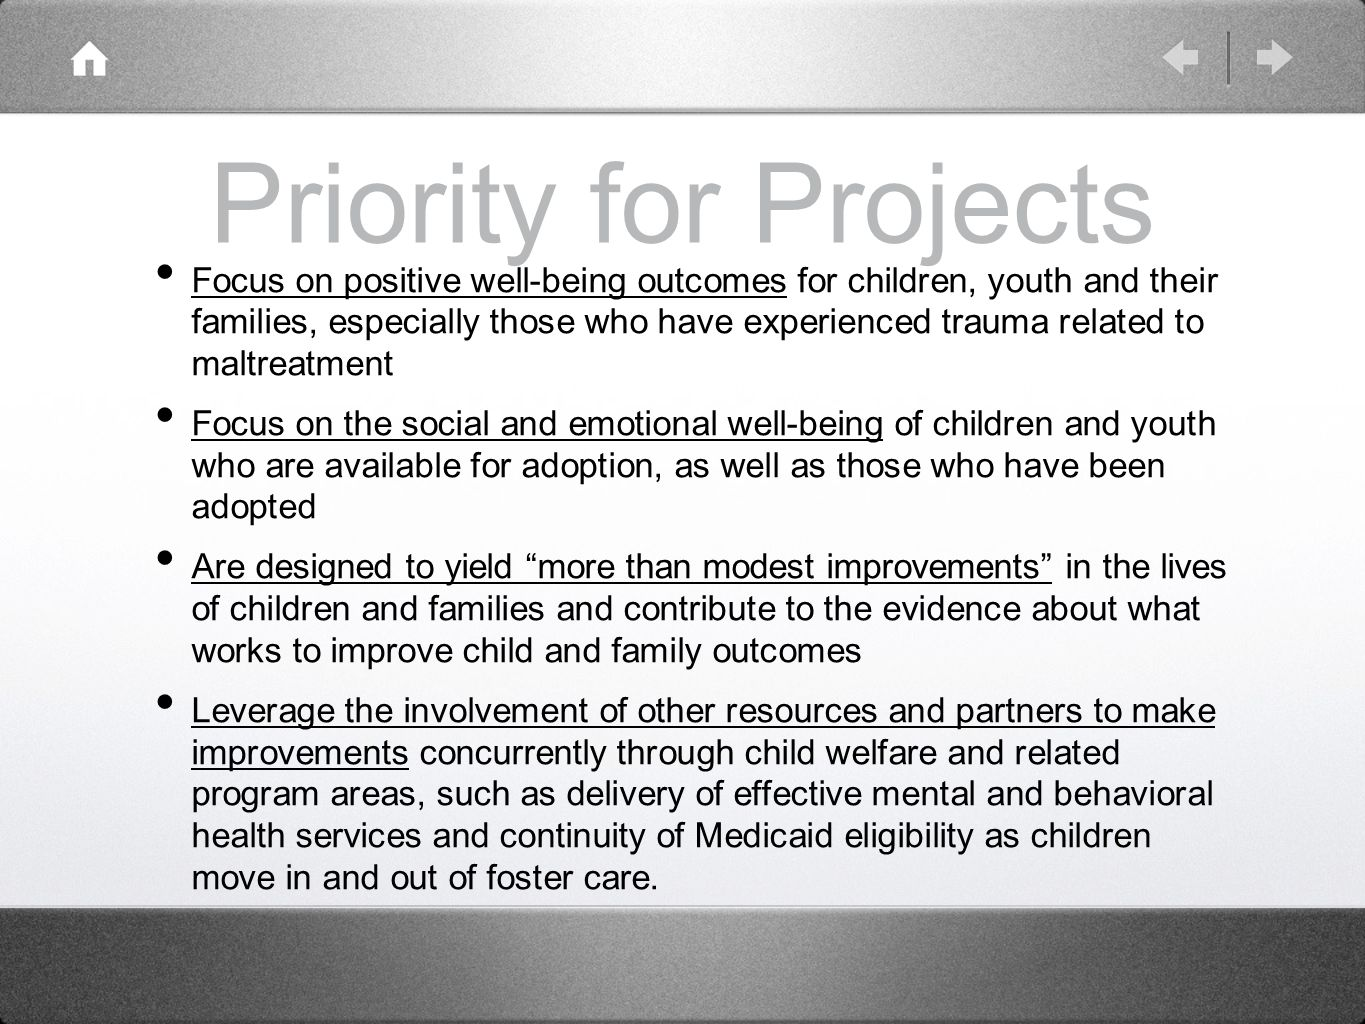 Priority for Projects Focus on positive well-being outcomes for children, youth and their families, especially those who have experienced trauma related to maltreatment Focus on the social and emotional well-being of children and youth who are available for adoption, as well as those who have been adopted Are designed to yield more than modest improvements in the lives of children and families and contribute to the evidence about what works to improve child and family outcomes Leverage the involvement of other resources and partners to make improvements concurrently through child welfare and related program areas, such as delivery of effective mental and behavioral health services and continuity of Medicaid eligibility as children move in and out of foster care.